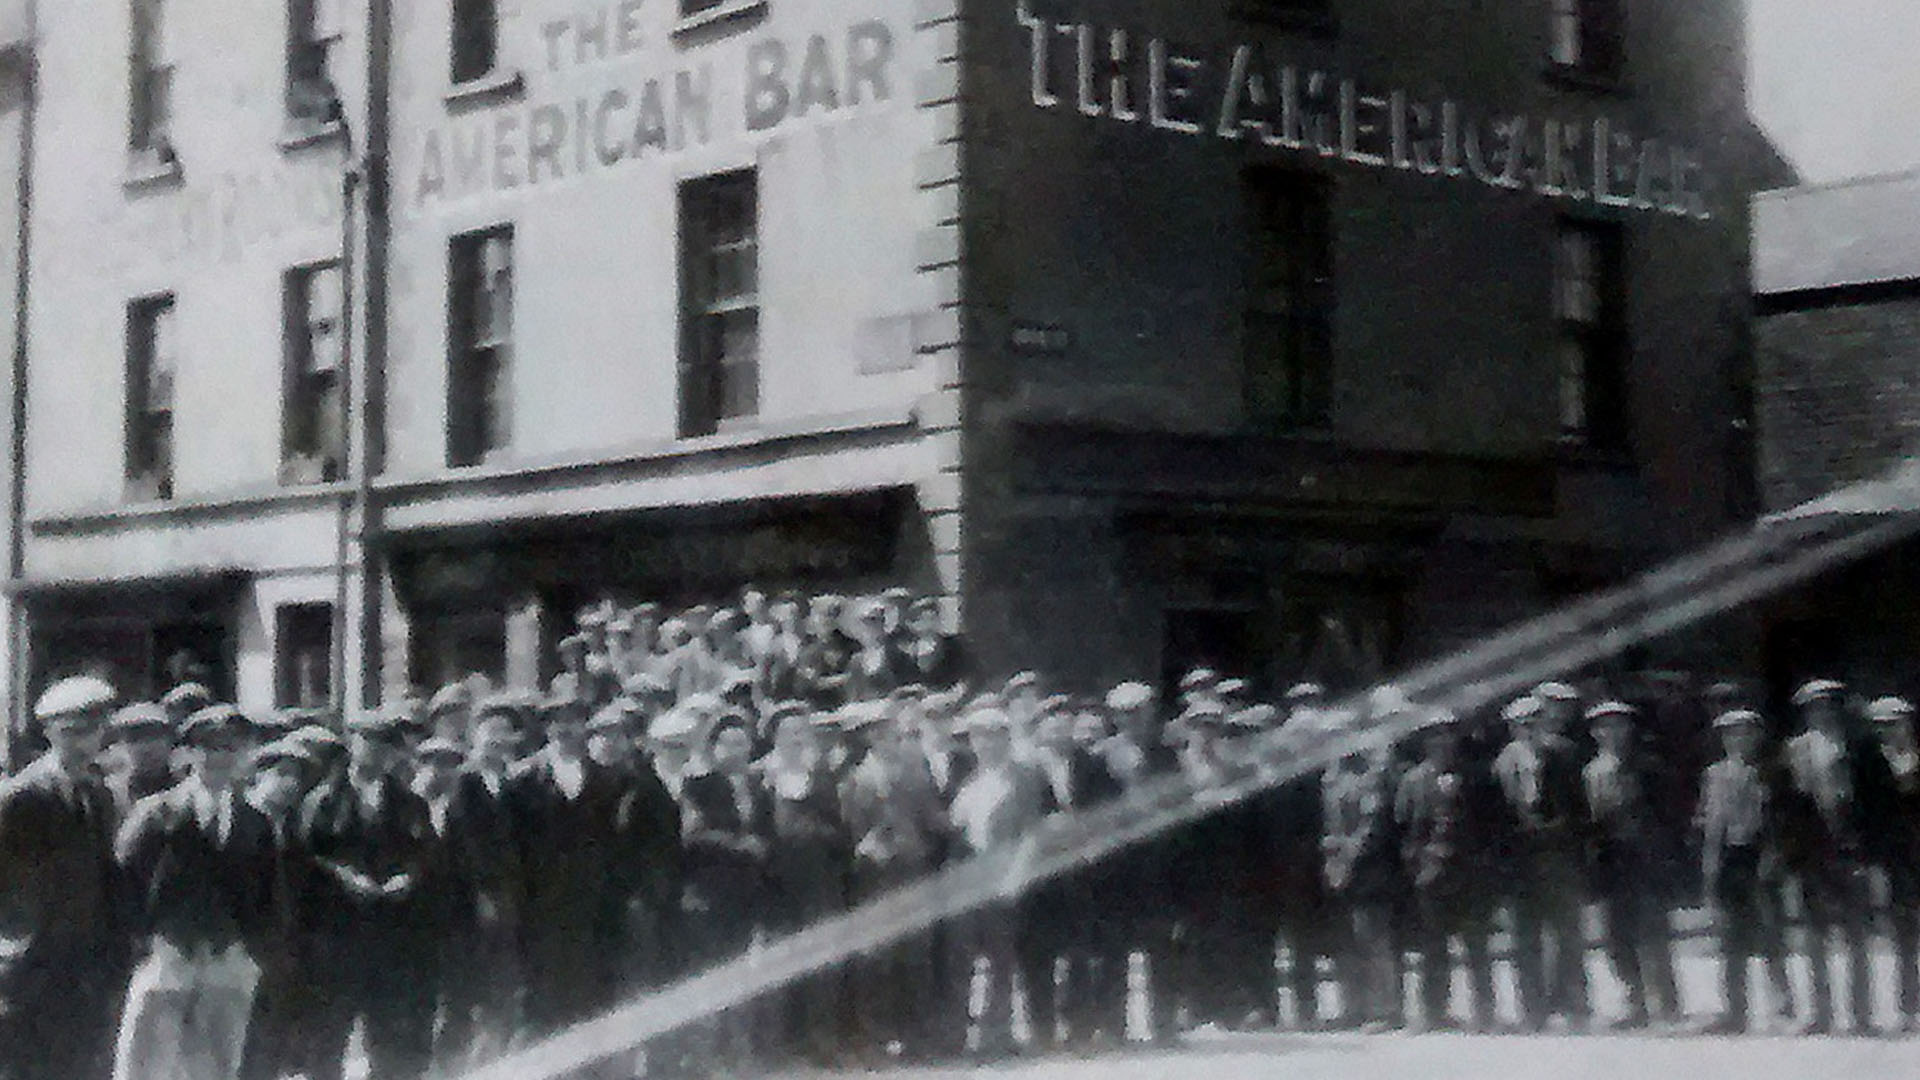 The American Bar, Belfast